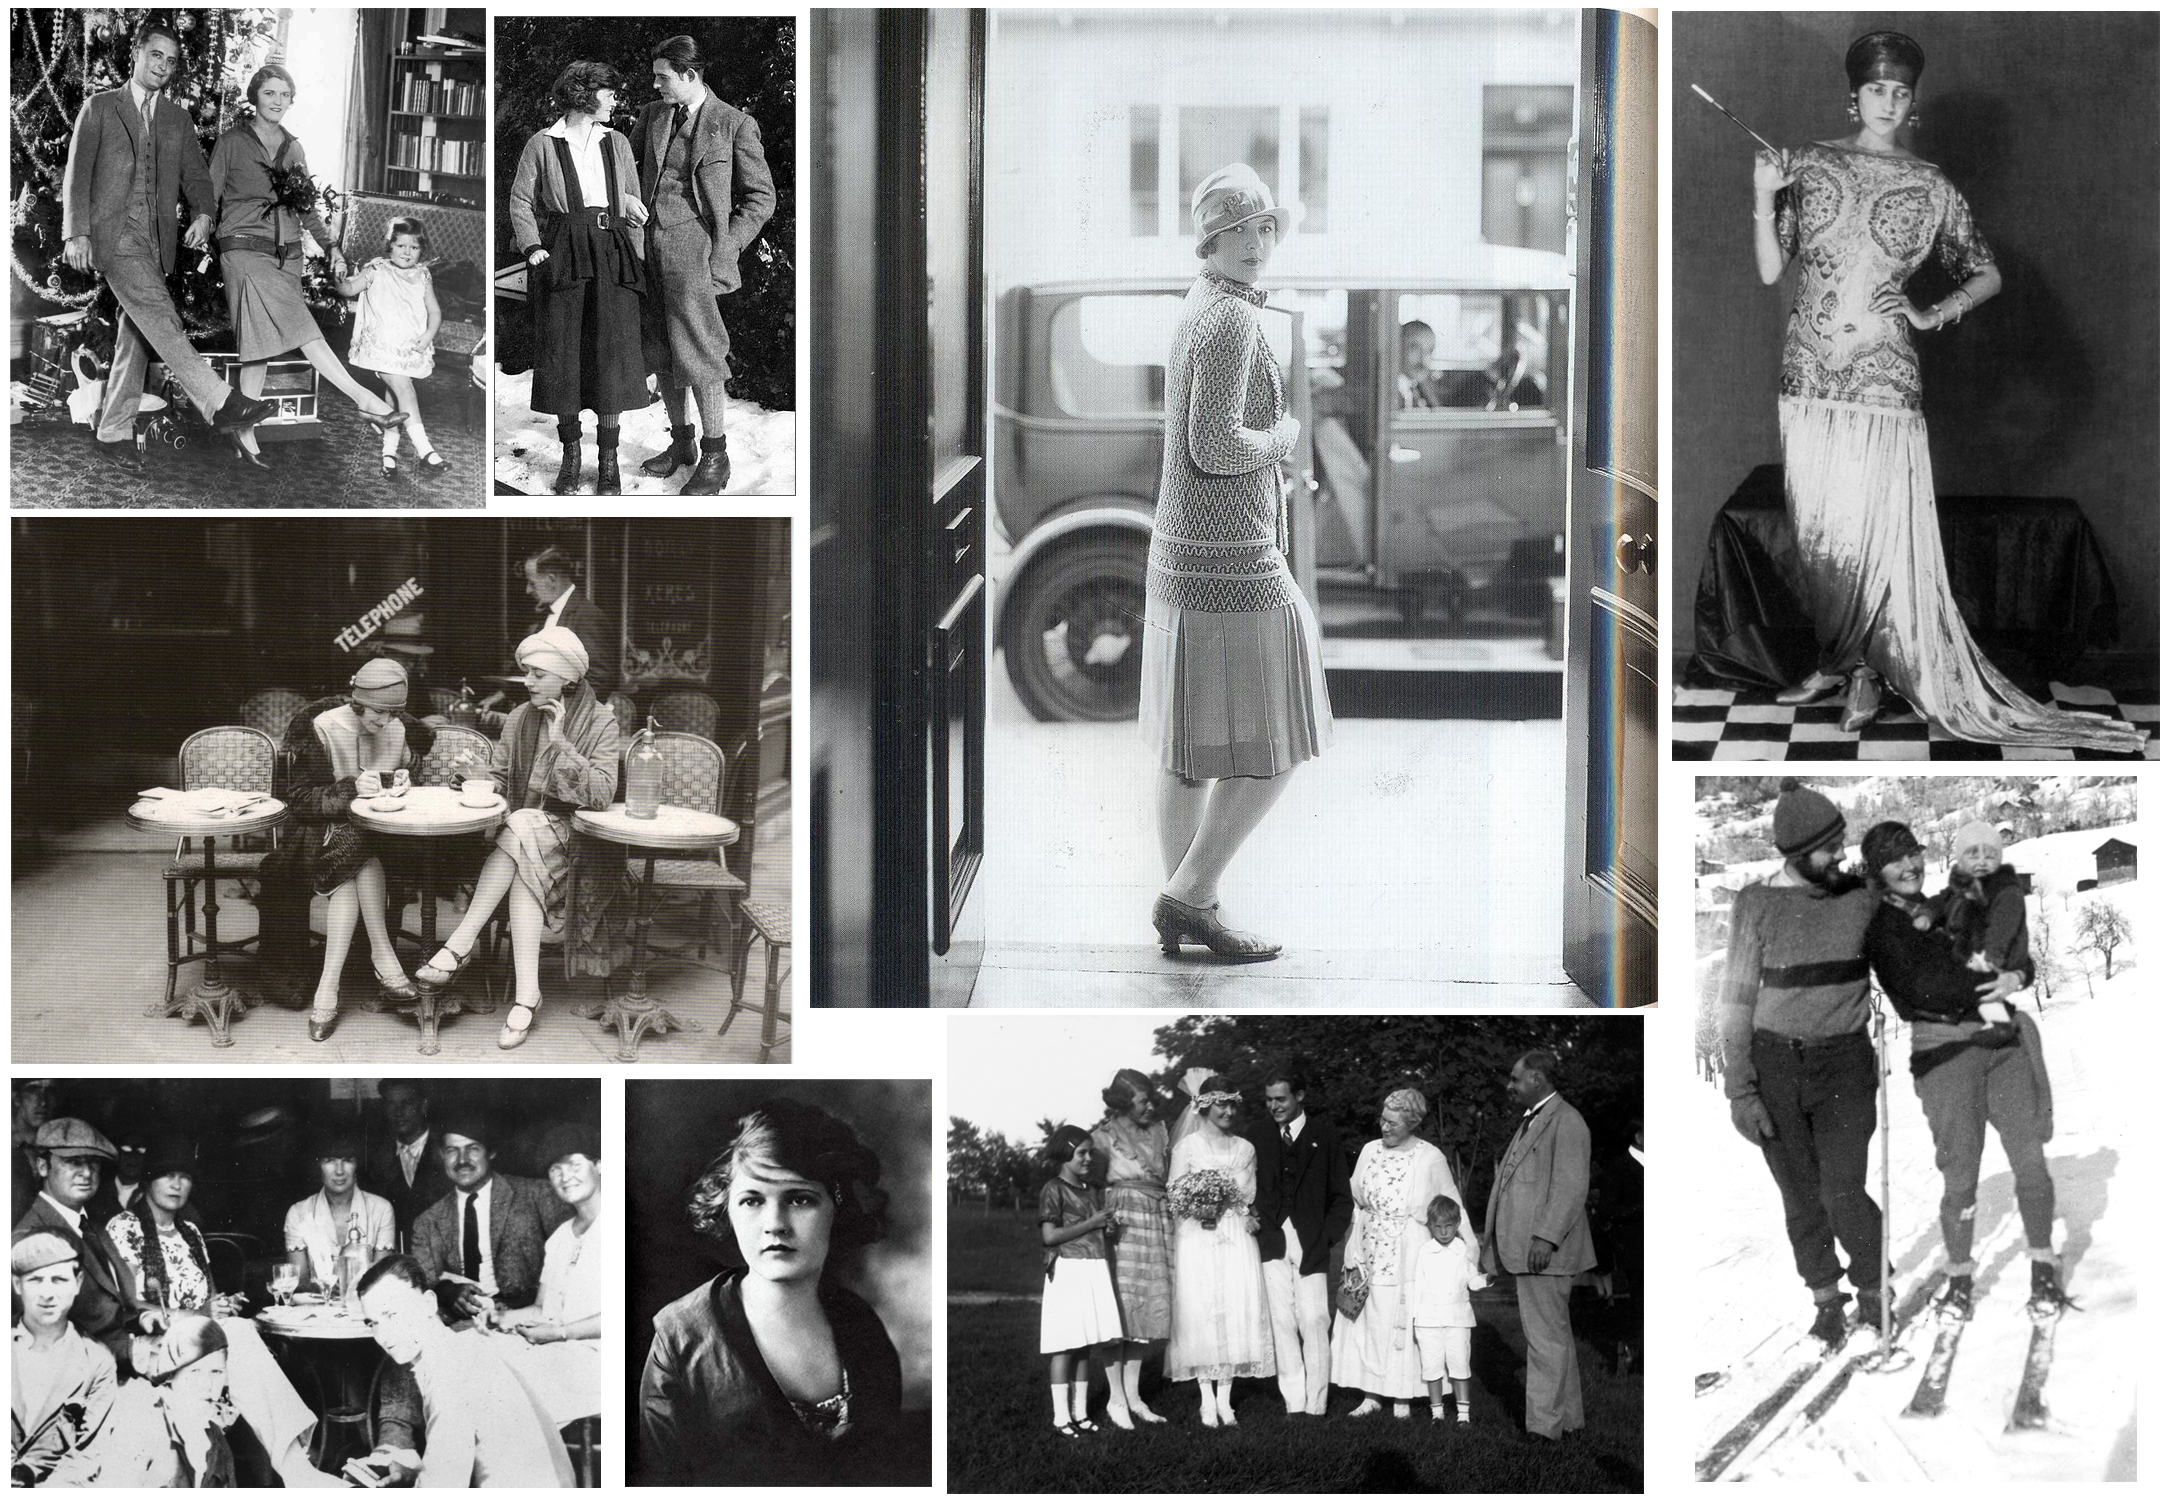 """From the top left going clockwise - Scott, Zelda and their daughter Scottie Fitzgerald. Hadley and Ernest Hemingway. Anonymous Flapper. Anonymous Model posing for Fashion Magazine. Ernest and Hadley skiing with their son Jack """"Bumby"""" Hemingway. The Hemingway Family at the wedding of Ernest and Hadley. Zelda Fitzgerald. The last two are pictures of Parisian Cafes in the 1920s, the people are unidentifiable."""